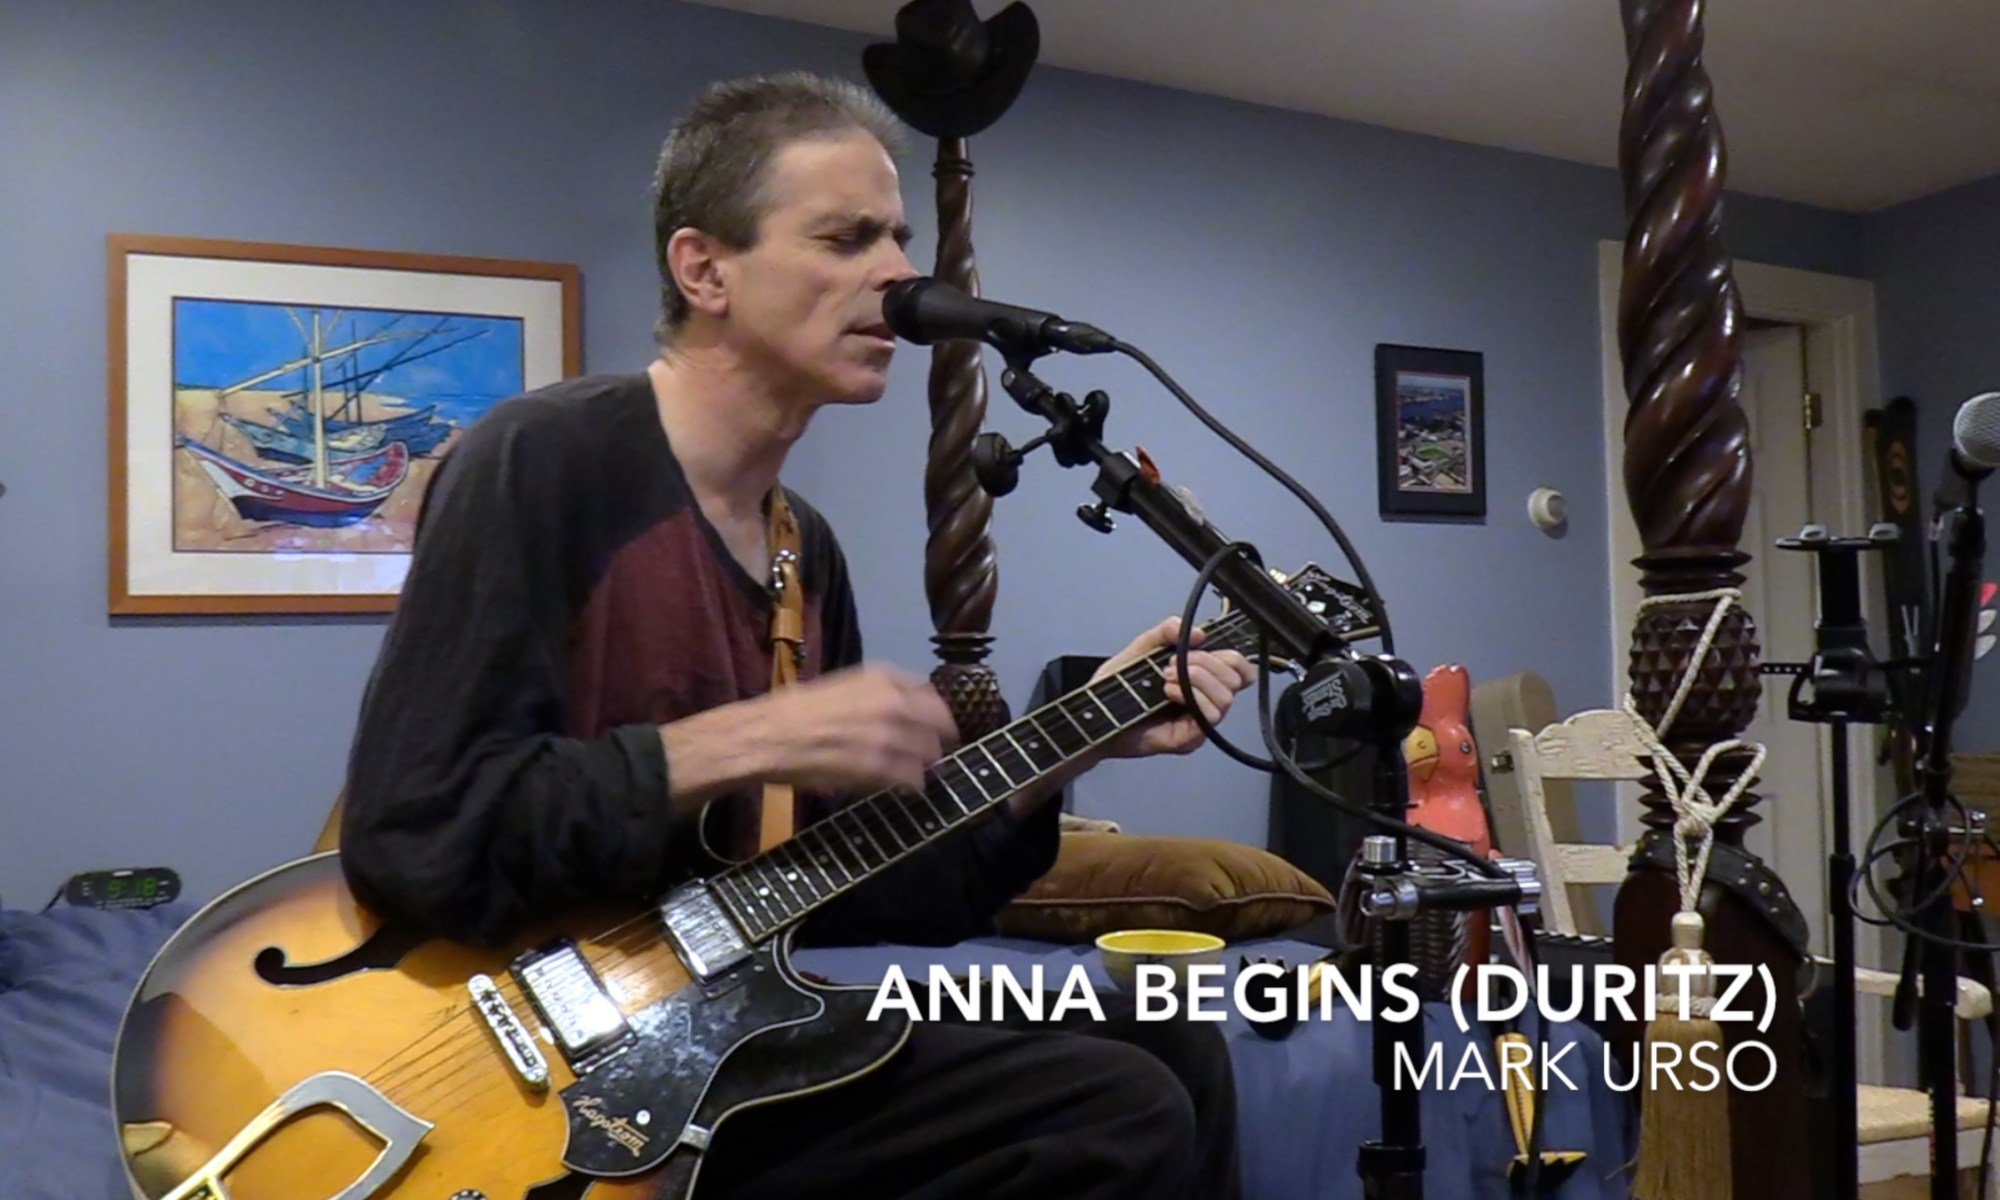 mark urso - anna begins